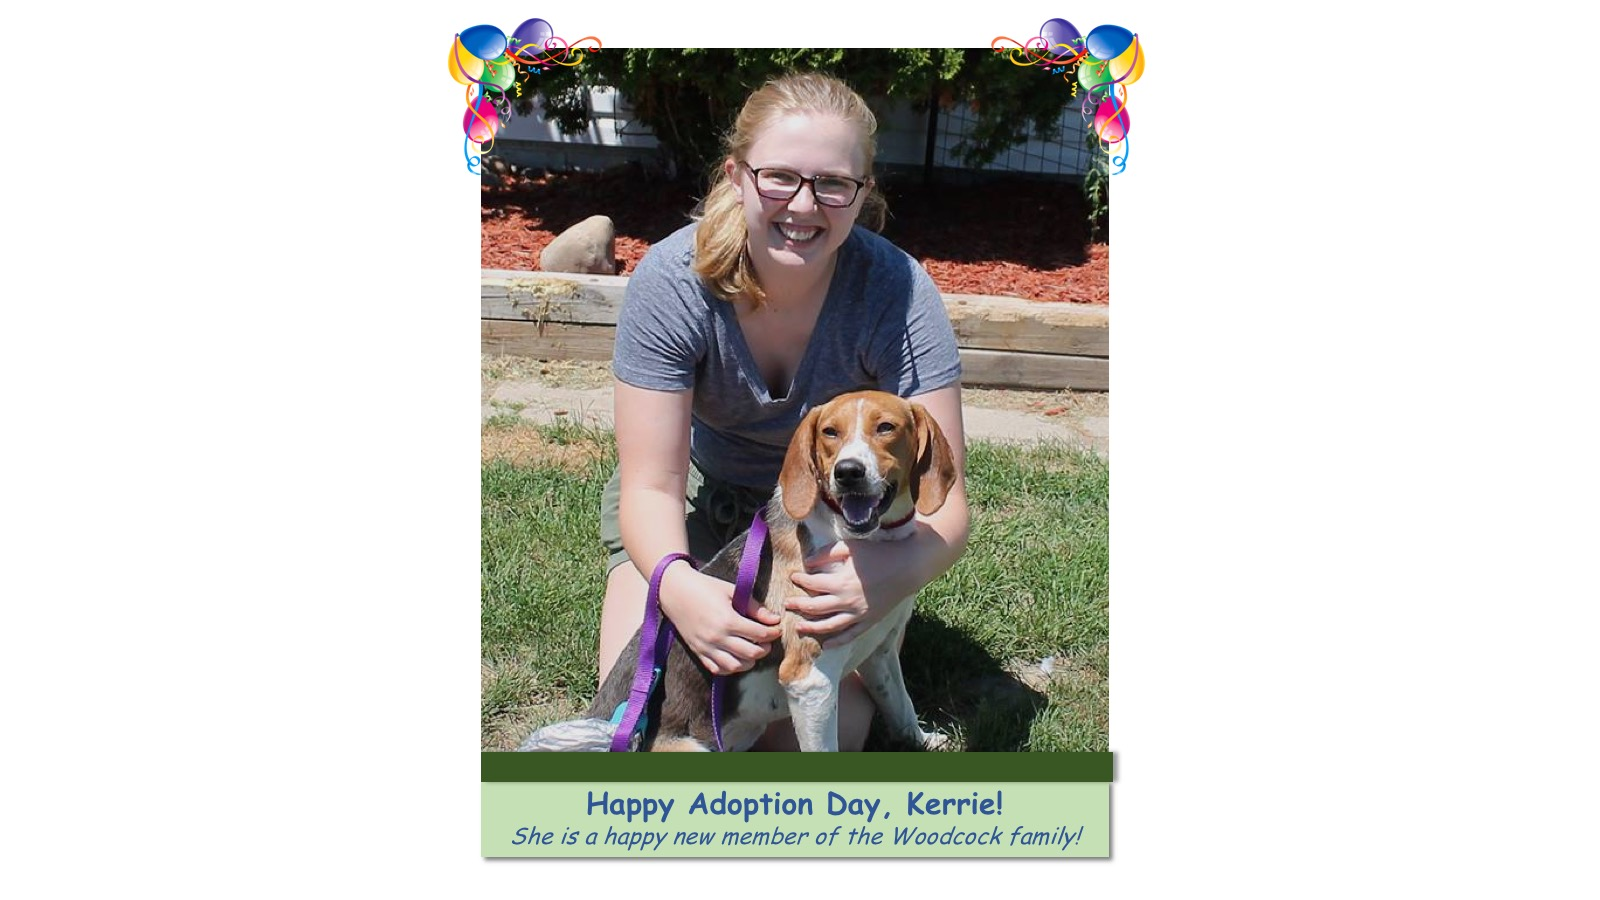 Kerrie_Adoption_Photo_2018.jpg